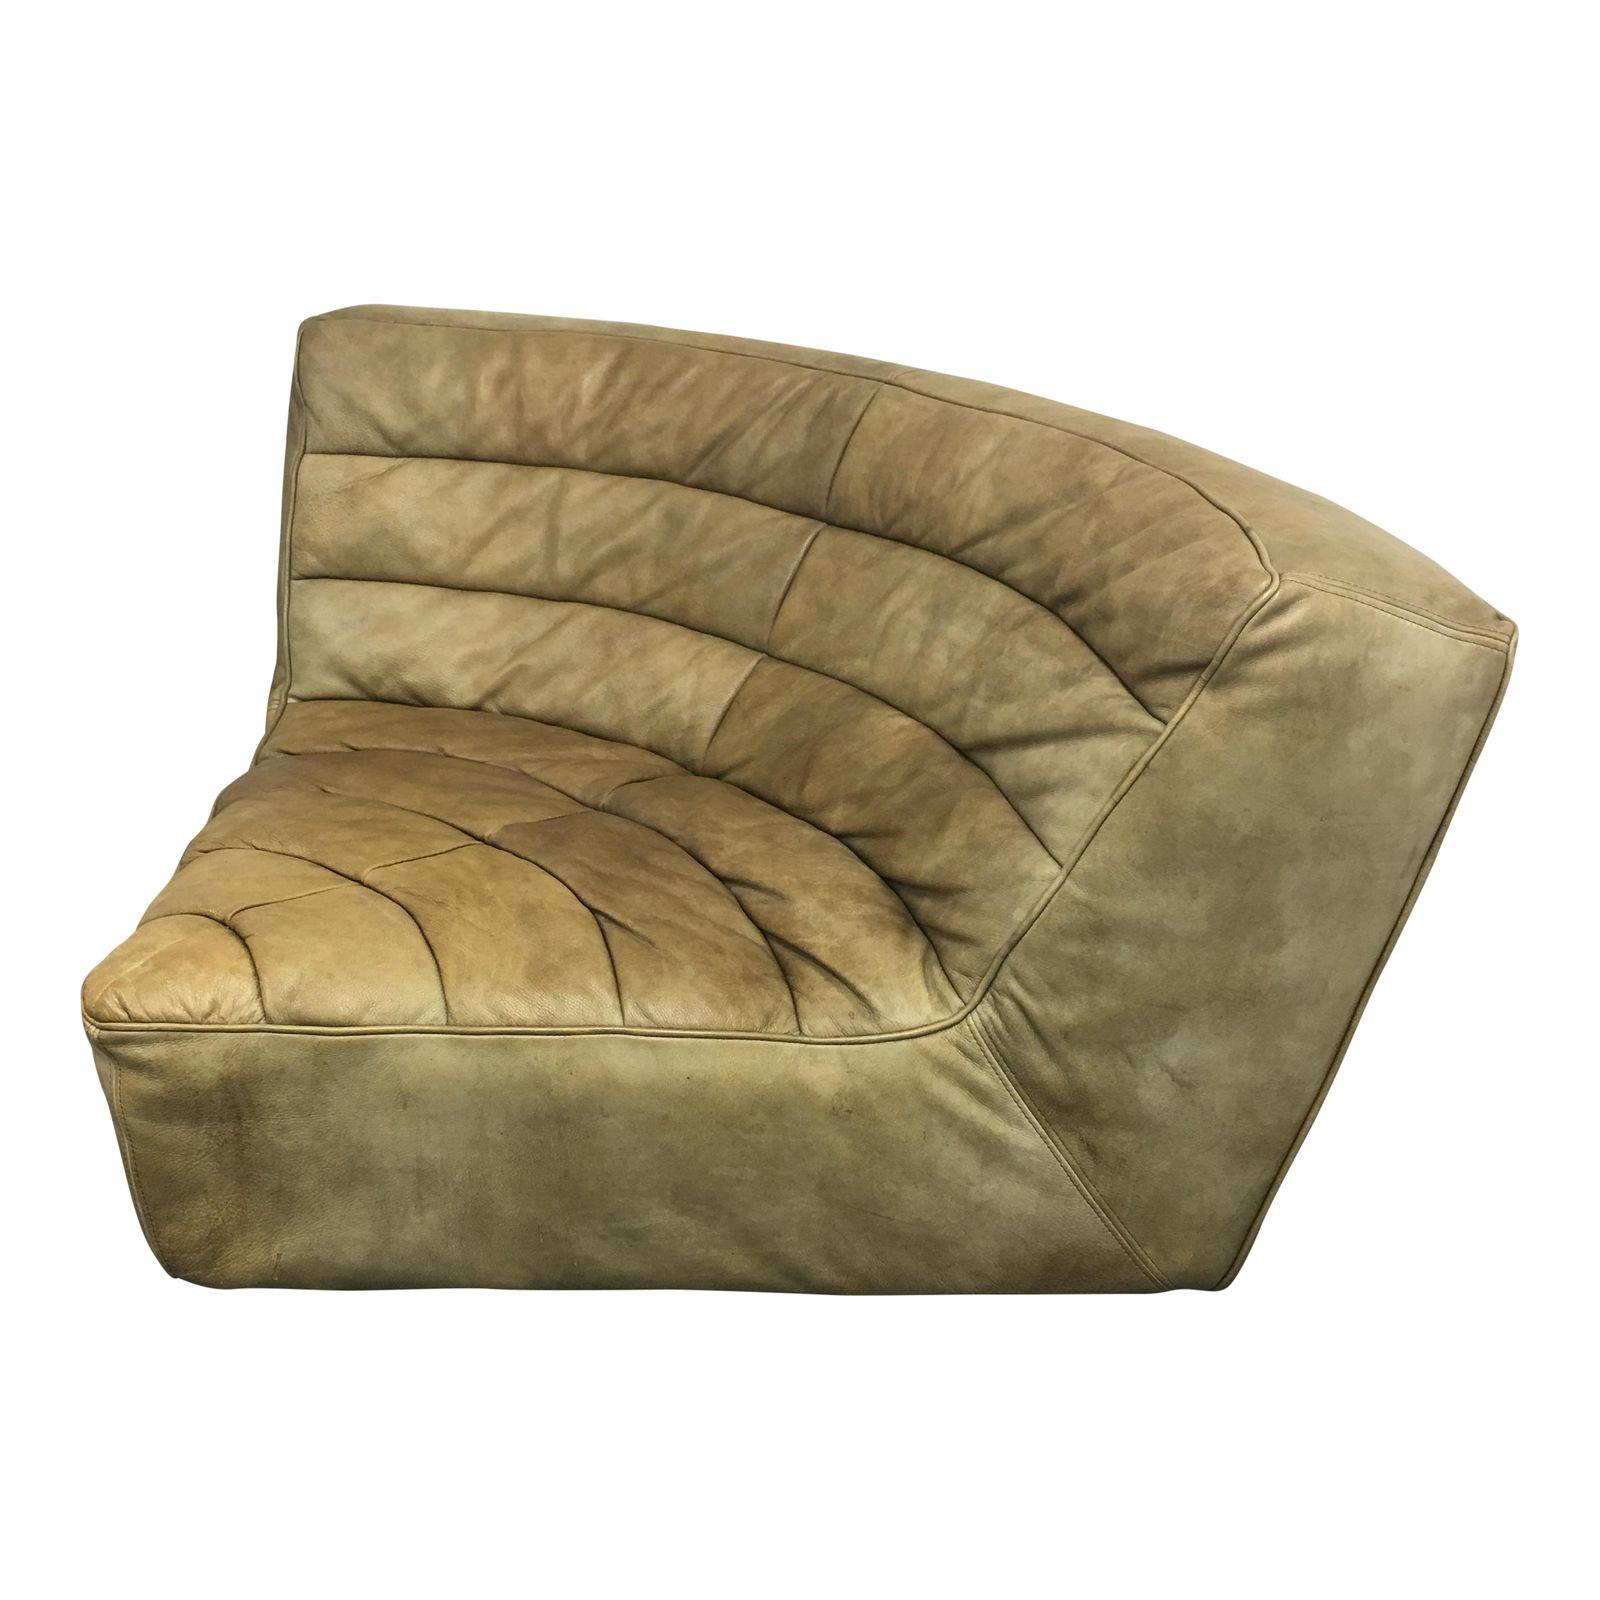 Restoration Hardware Chelsea Leather Round Corner Chair Original Price 2 950 00